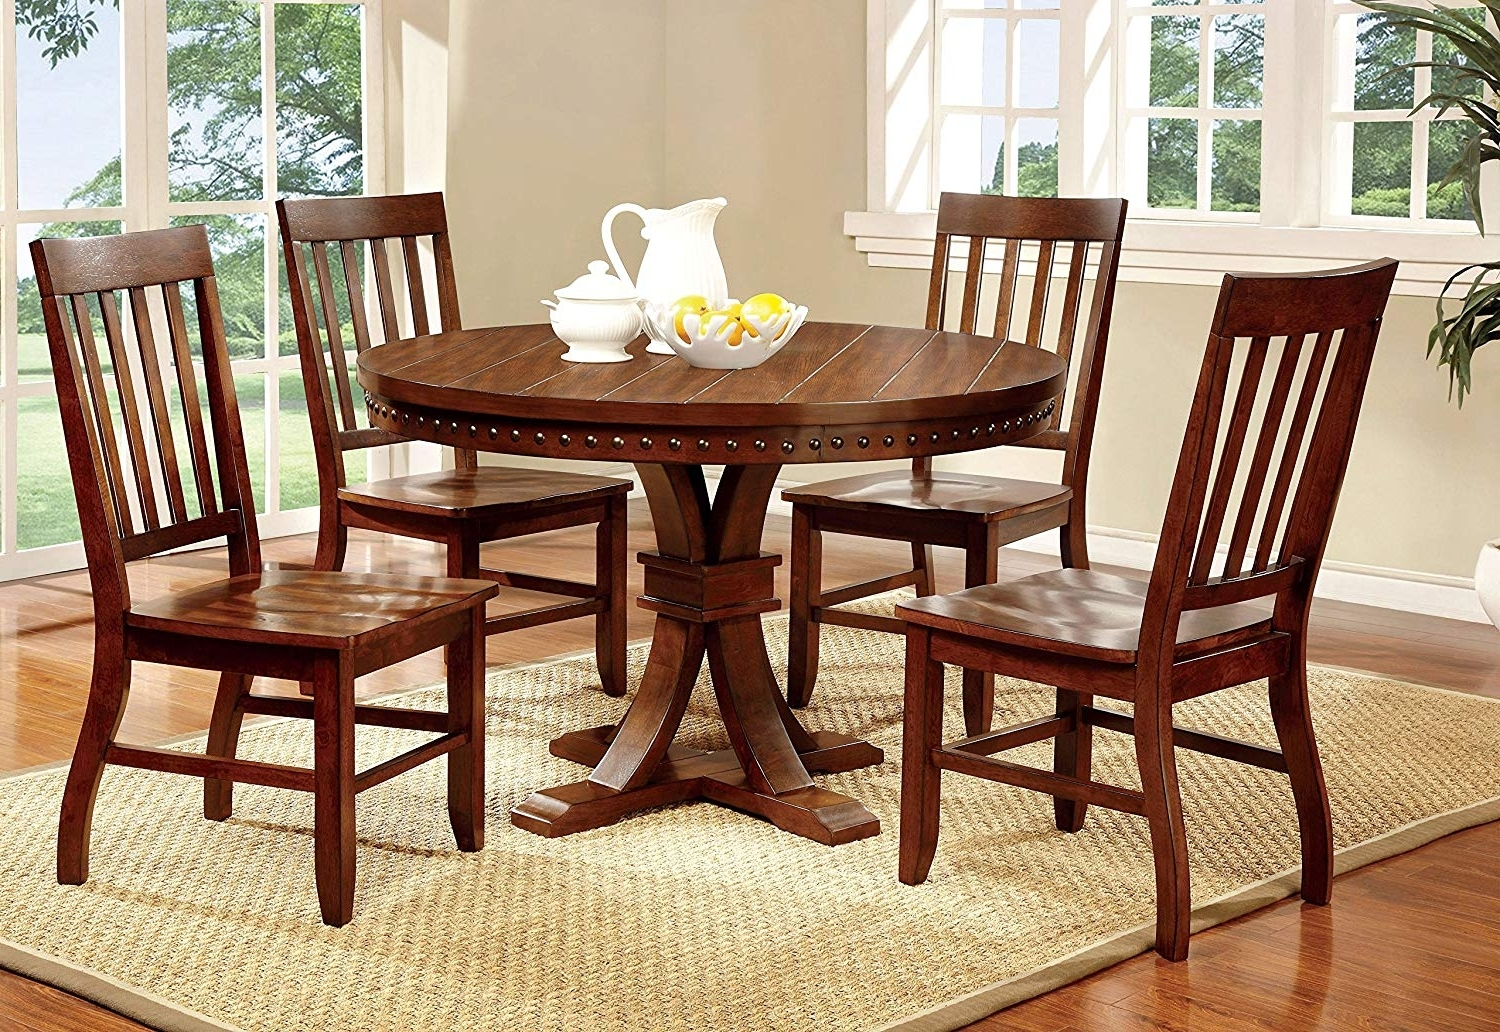 Amazon – Furniture Of America Castile 5 Piece Transitional Round With Regard To Recent Cheap Round Dining Tables (View 22 of 25)